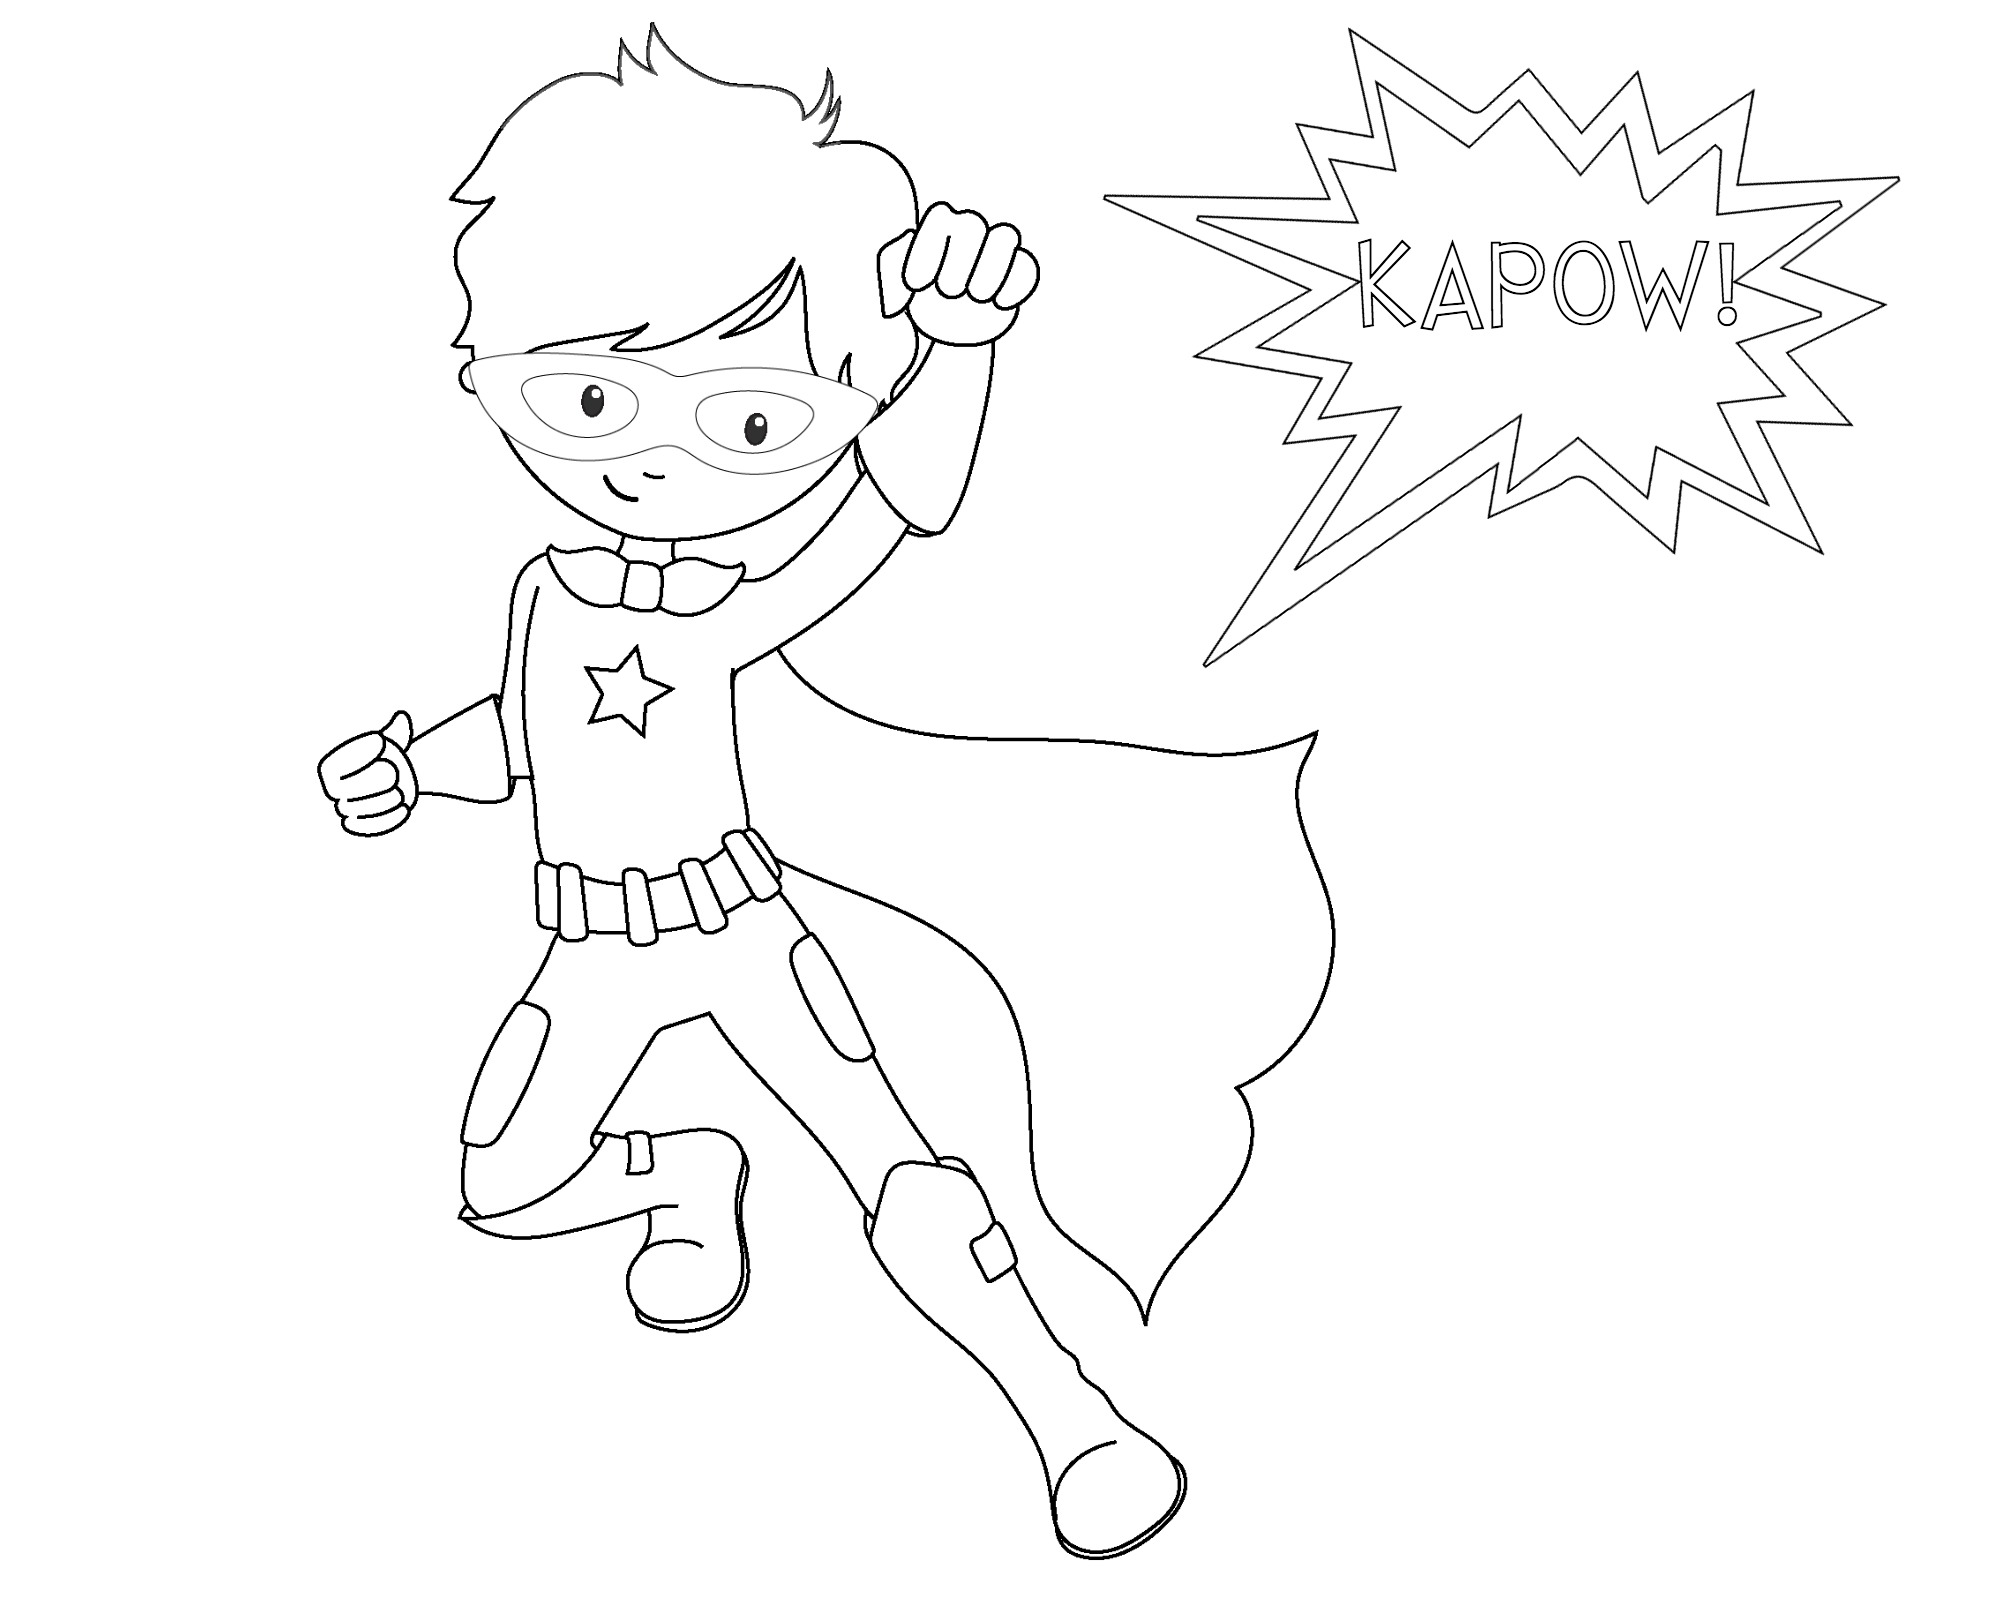 kapow superhero coloring page superhero4 - Superhero Coloring Pages